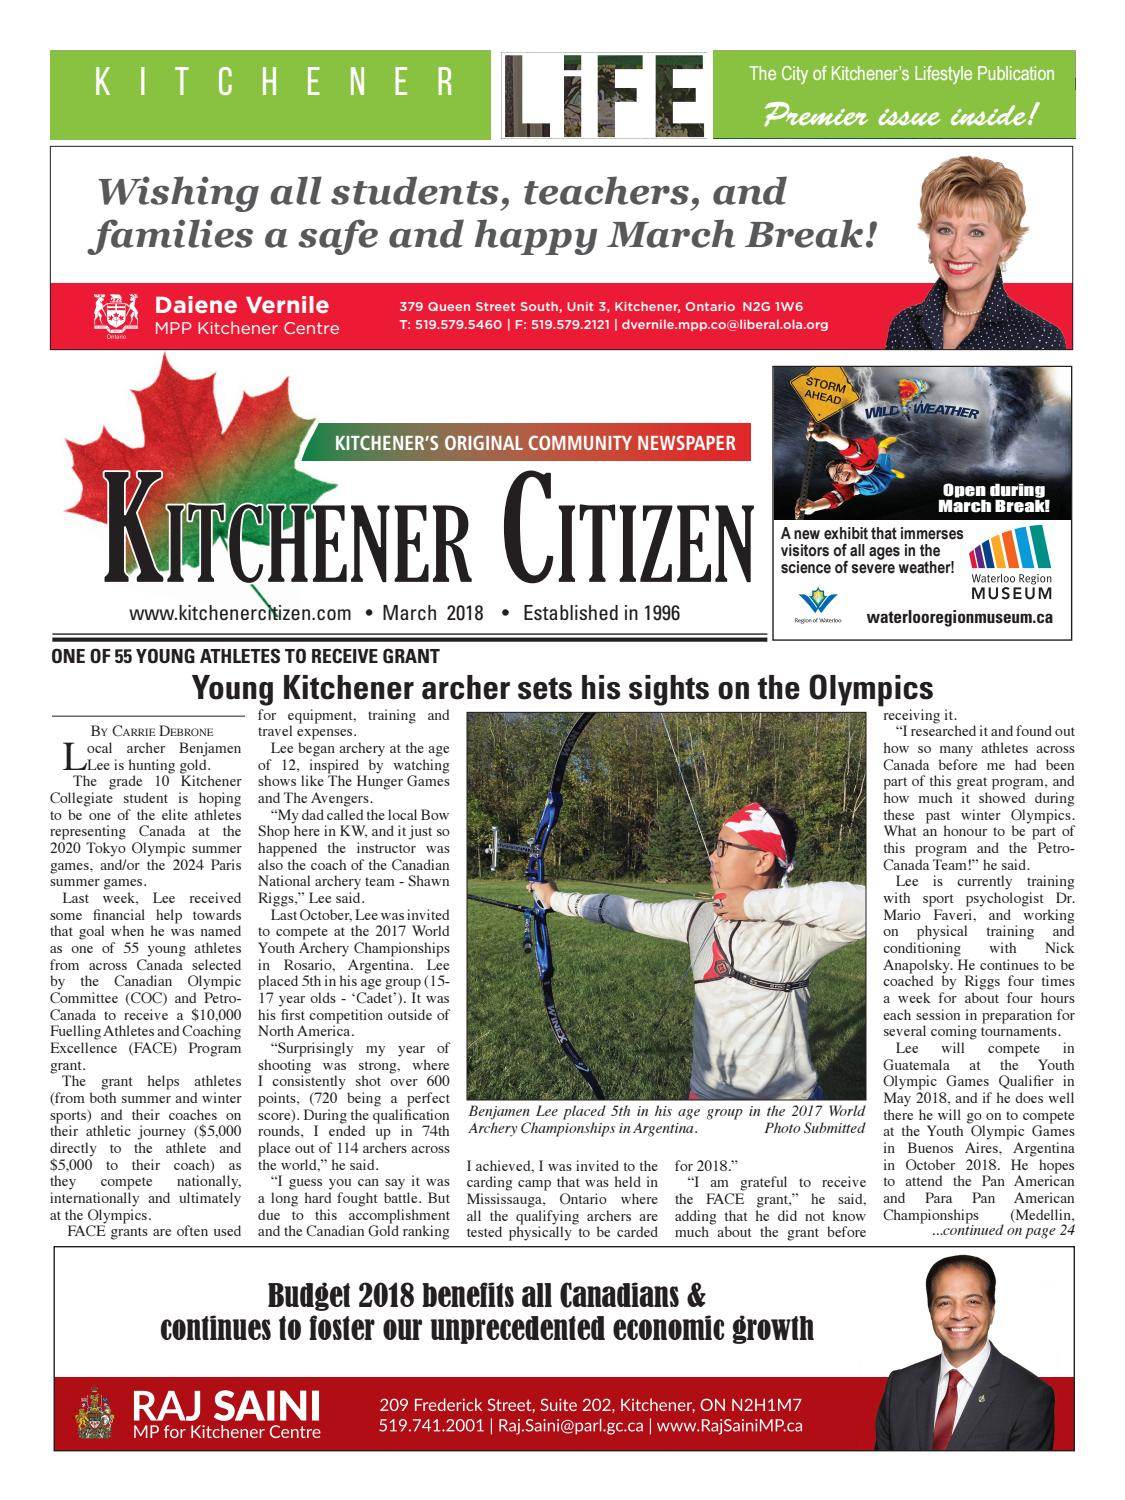 Kitchener Citizen - March 2018 by Kitchener Citizen - issuu